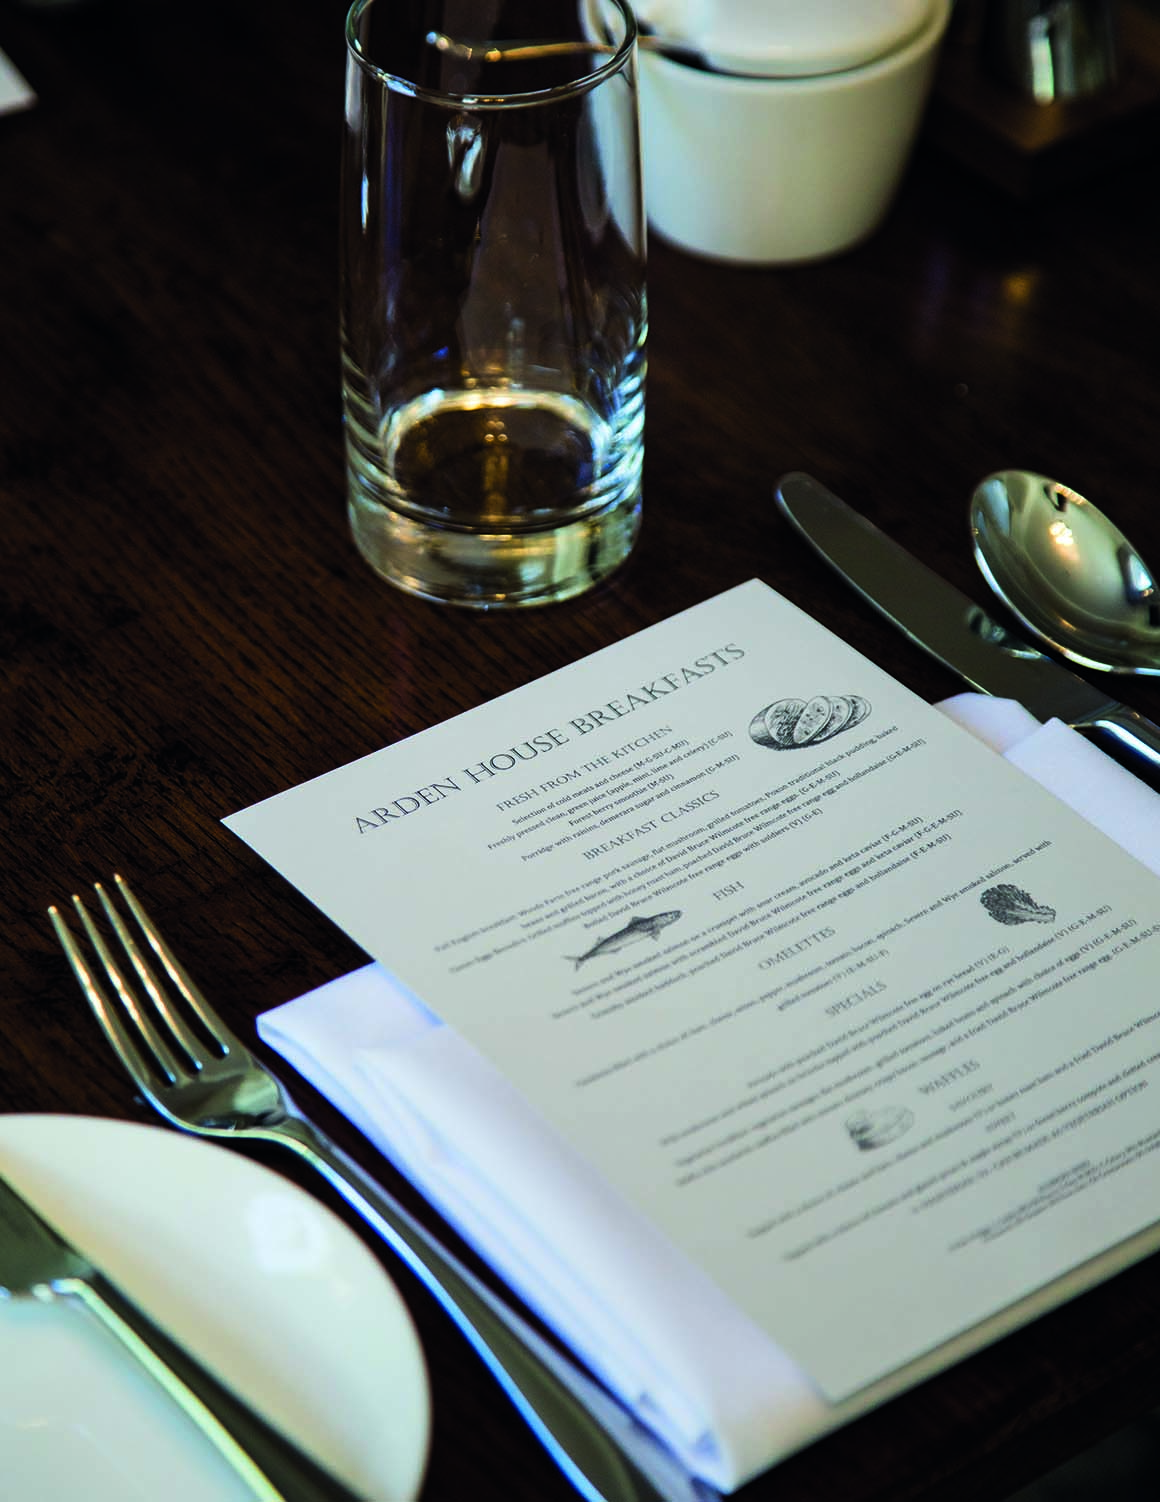 Arden House Hotel Photo Gallery table with breakfast menu